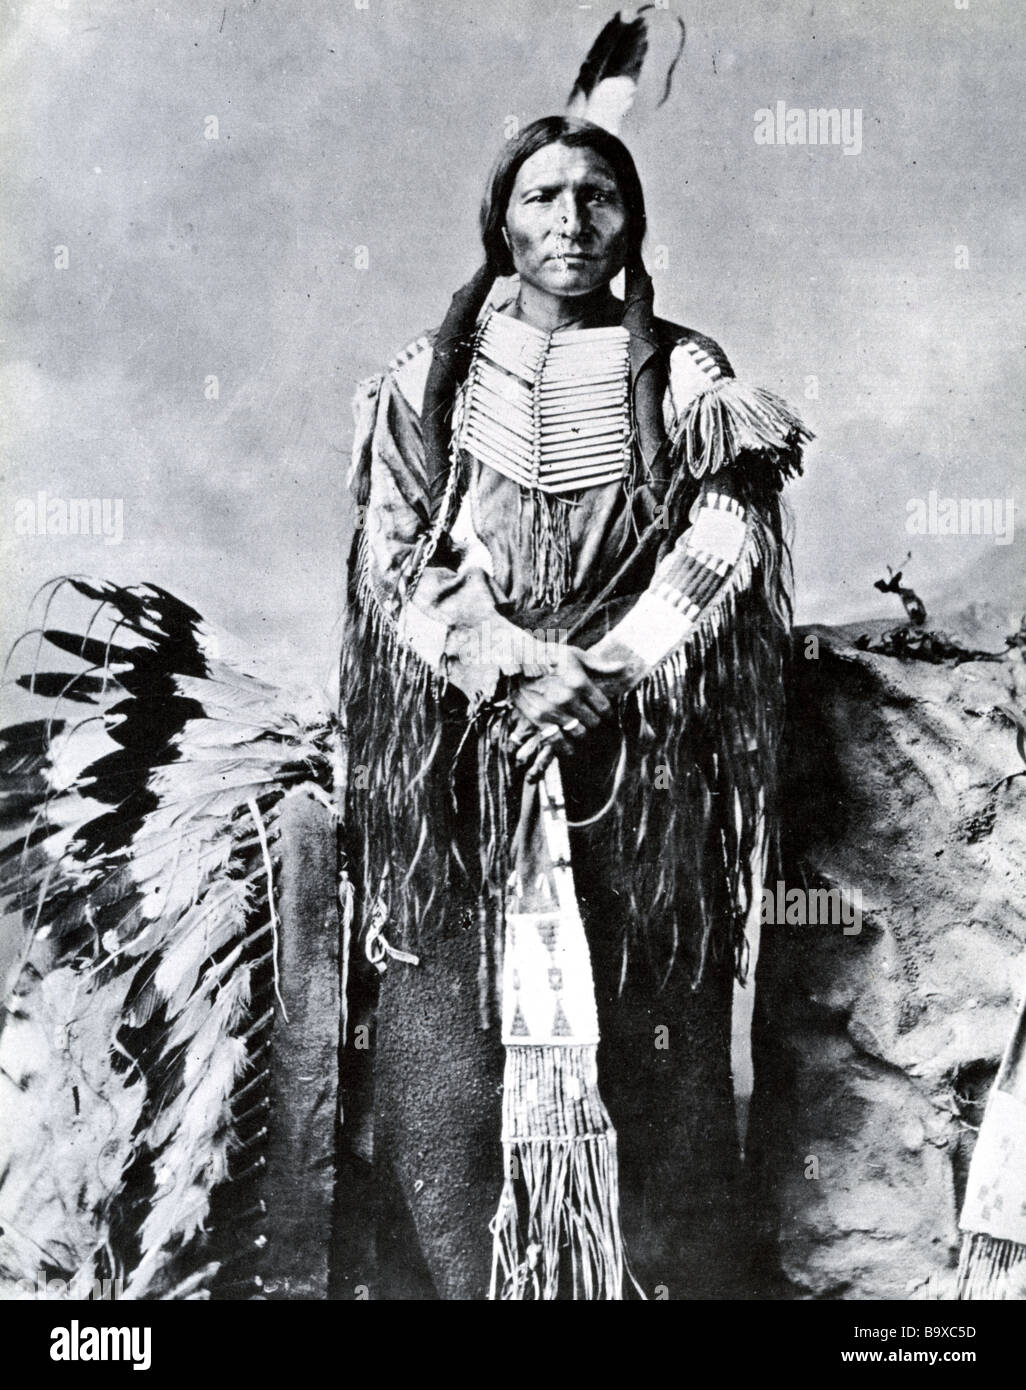 LITTLE BIG MAN spokesman for the Oglala Sioux in the Indian Wars of the 1870s - Stock Image